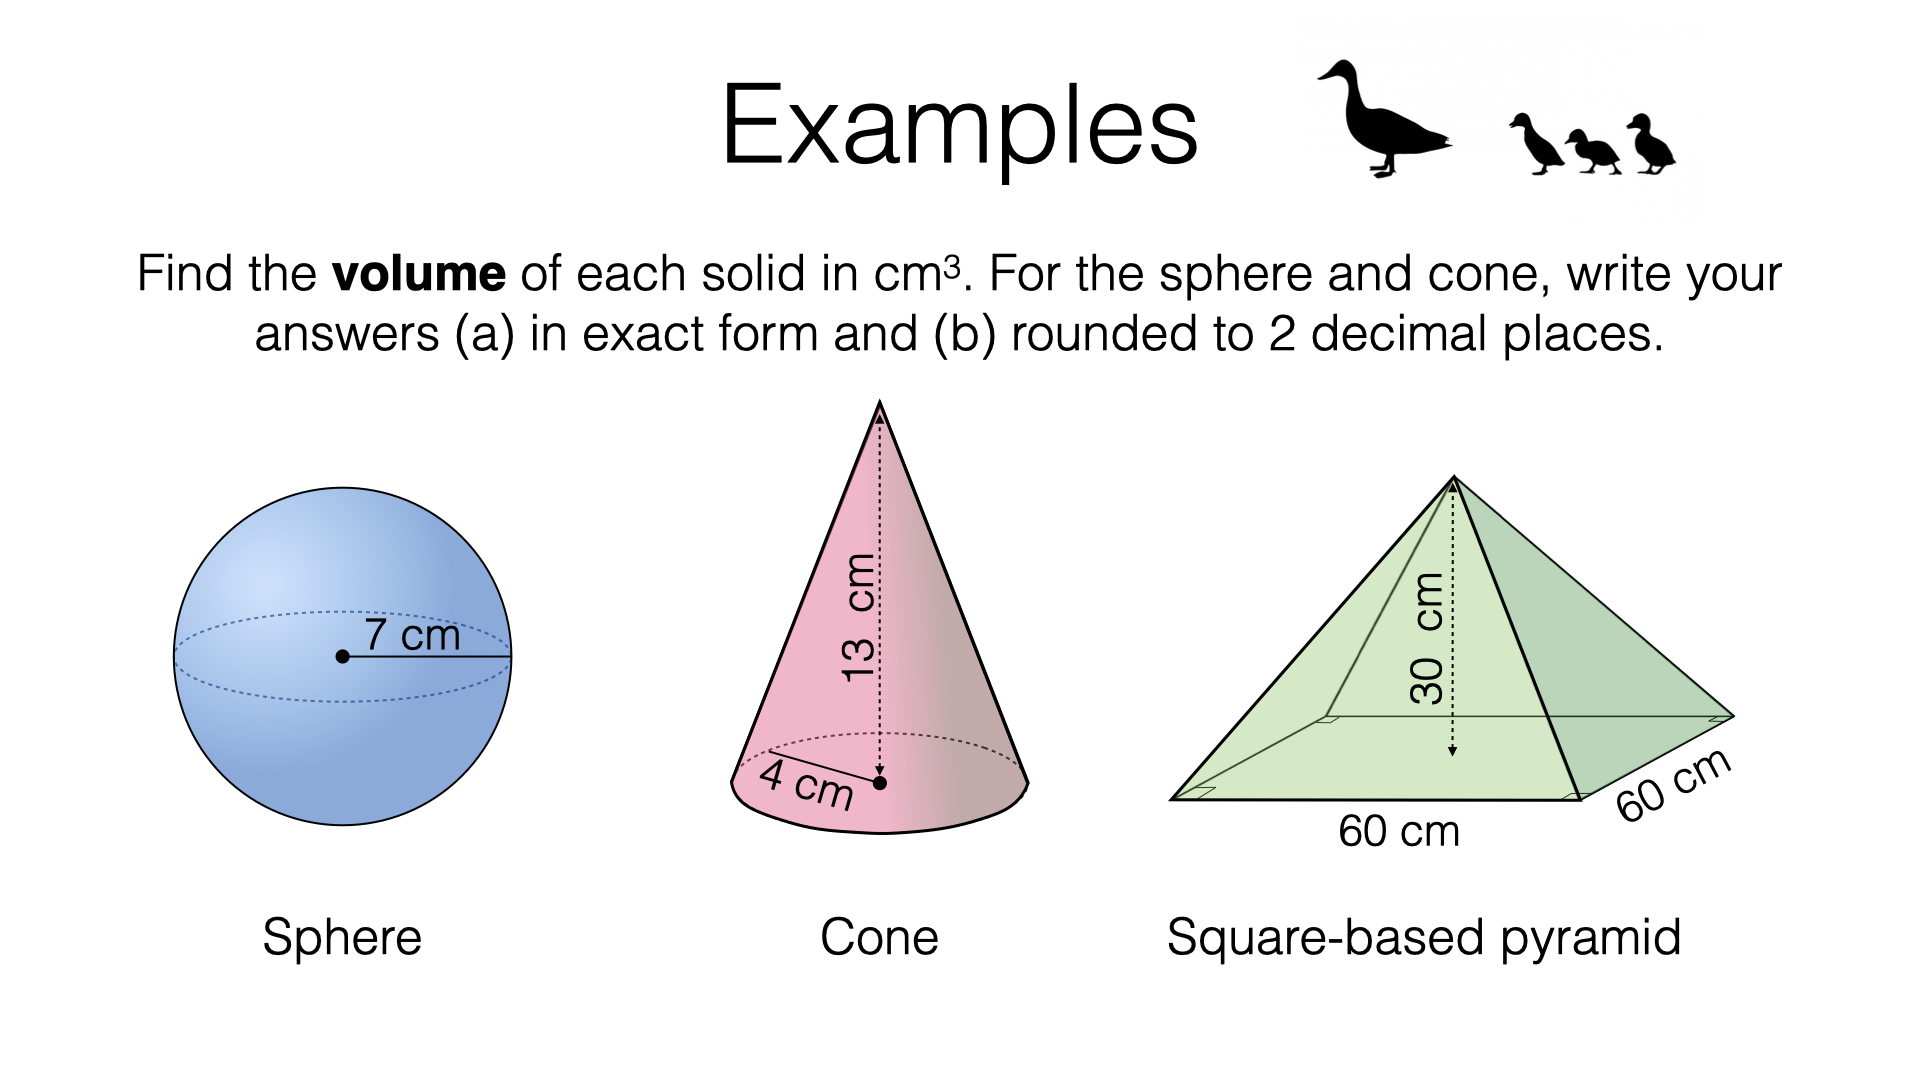 Worksheets Volume Of Pyramids And Cones Worksheet g17g volume of spheres pyramids and cones bossmaths com cones